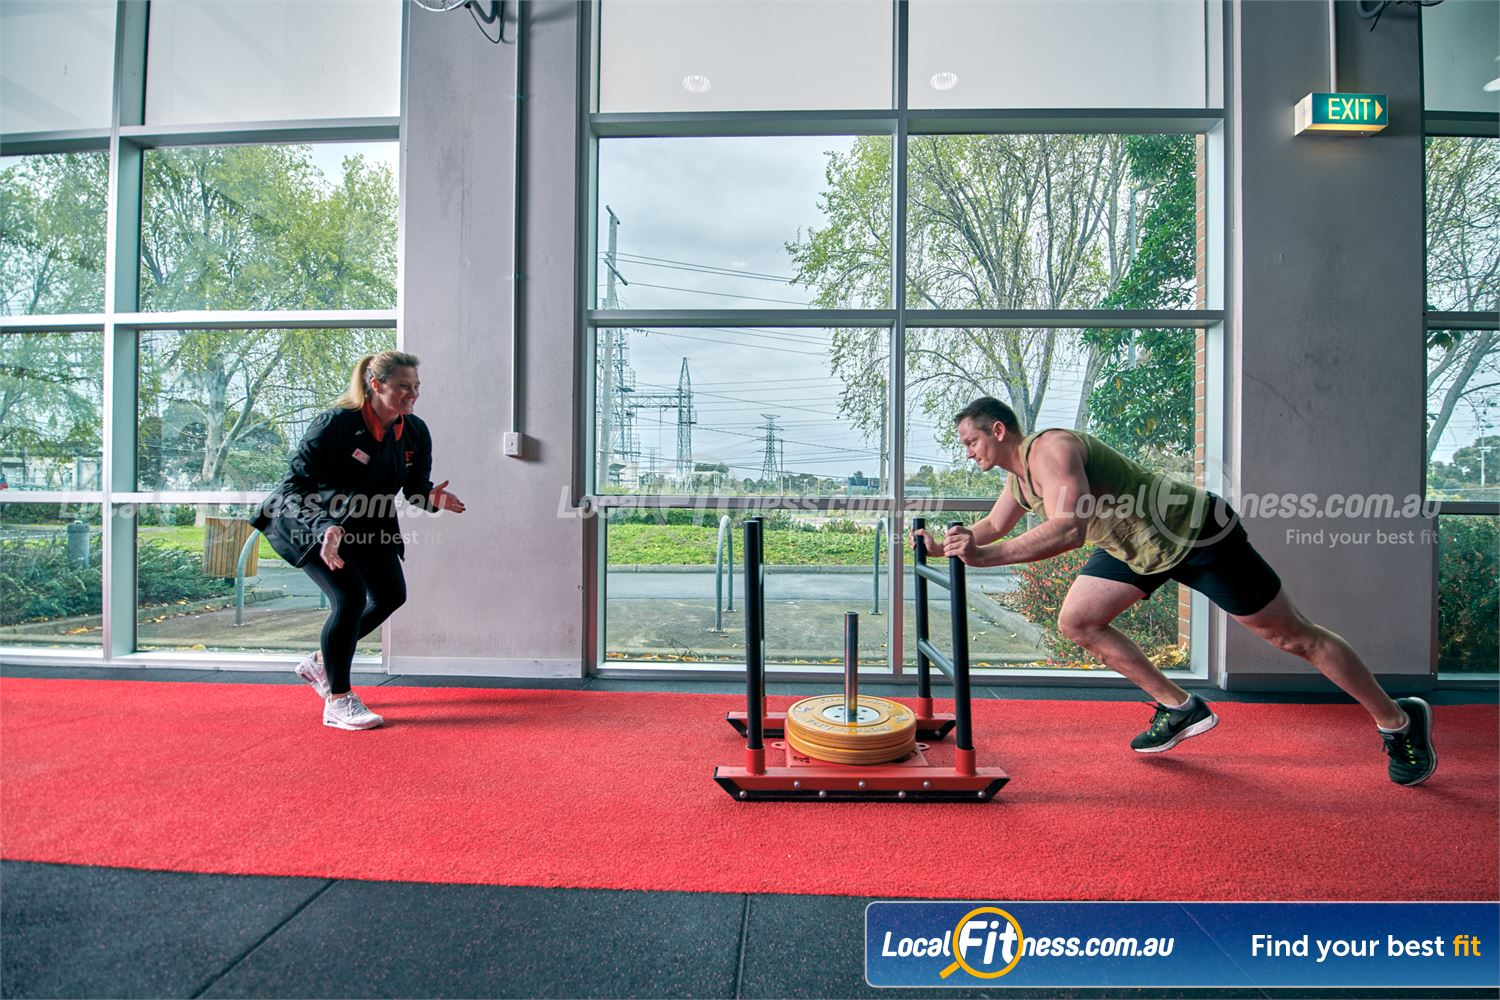 Fitness First Malvern Valley Chadstone Prowler sled training is a great way to condition your body.